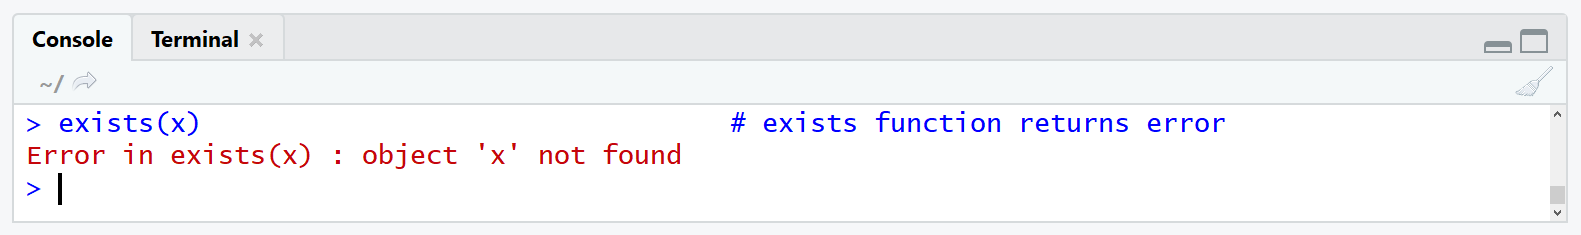 R error in exists x. object x not found